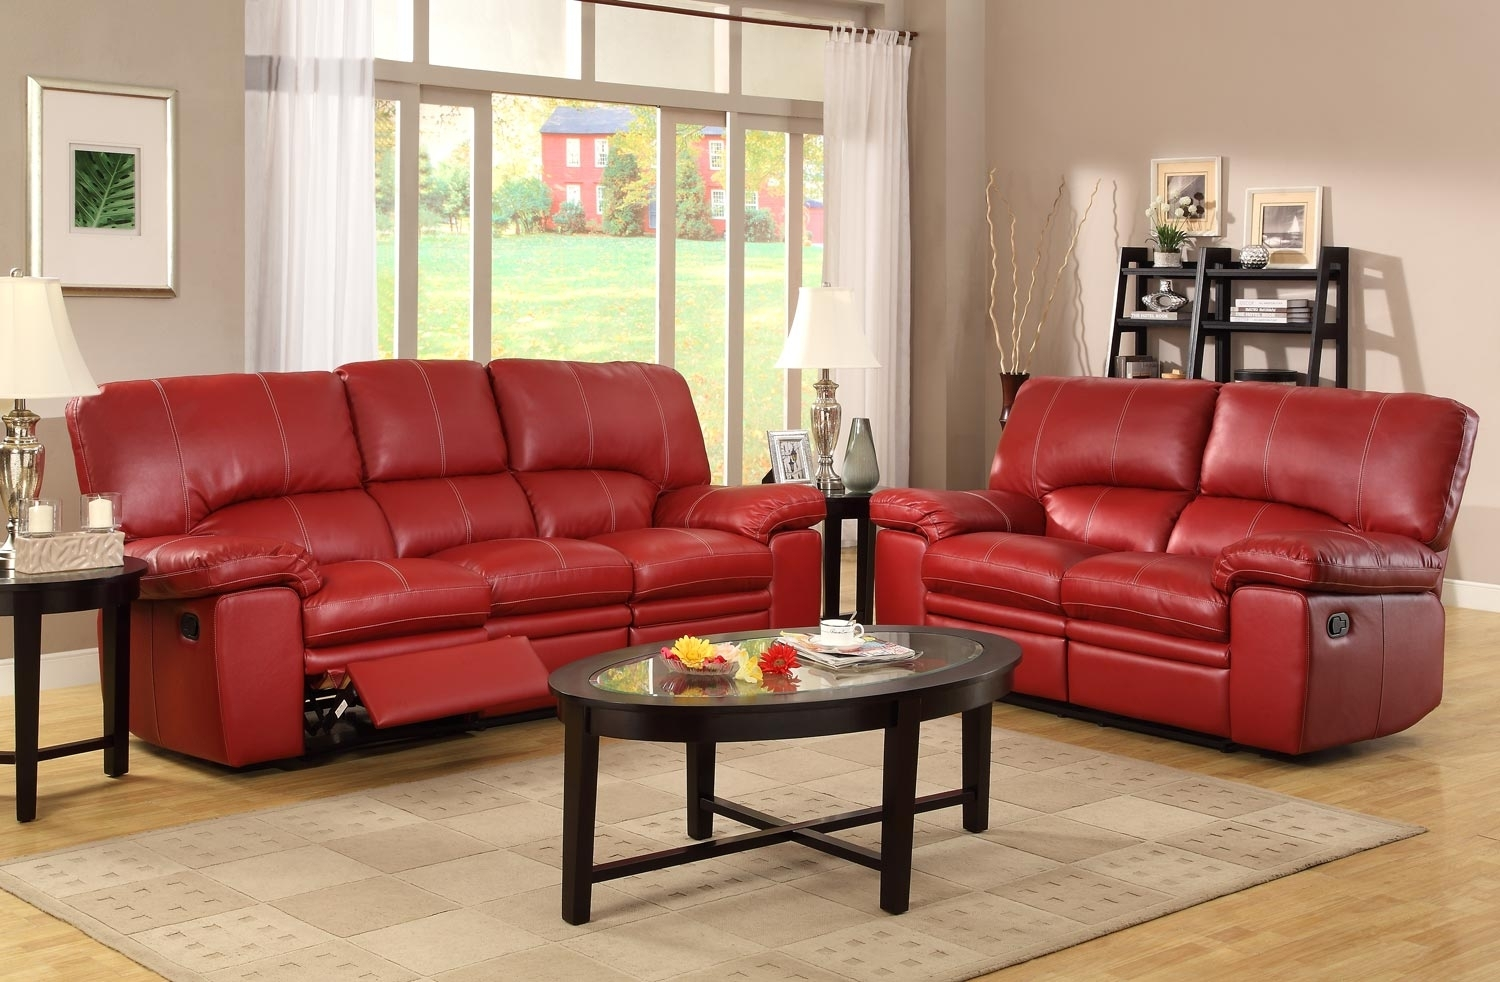 Sofa: Fascinating Red Leather Sofa Set Ashley Furniture Leather Set Throughout Red Leather Reclining Sofas And Loveseats (View 3 of 10)